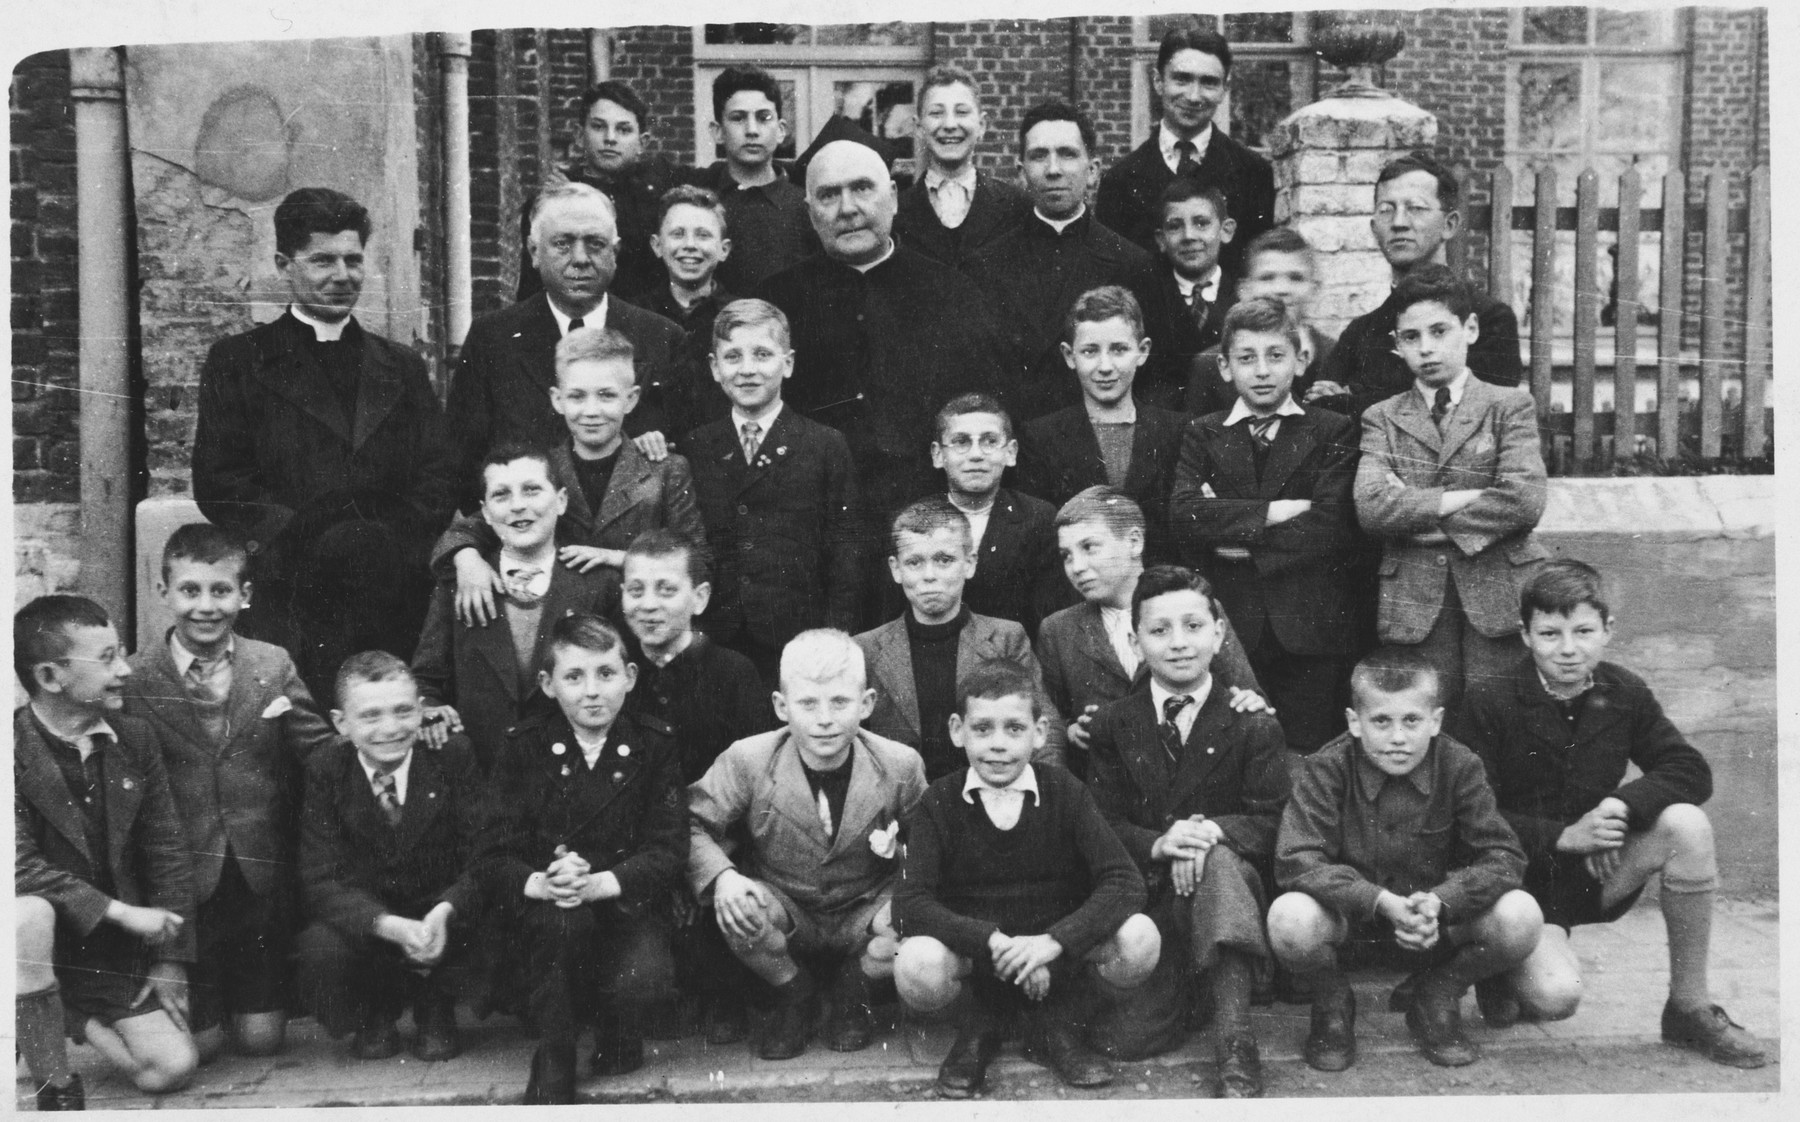 Group portrait of students at the Melle monastery, where Jewish boys were hiding during the German occupation of Belgium.  Among those pictured is Jacques Kucinski (third row, second from the right).